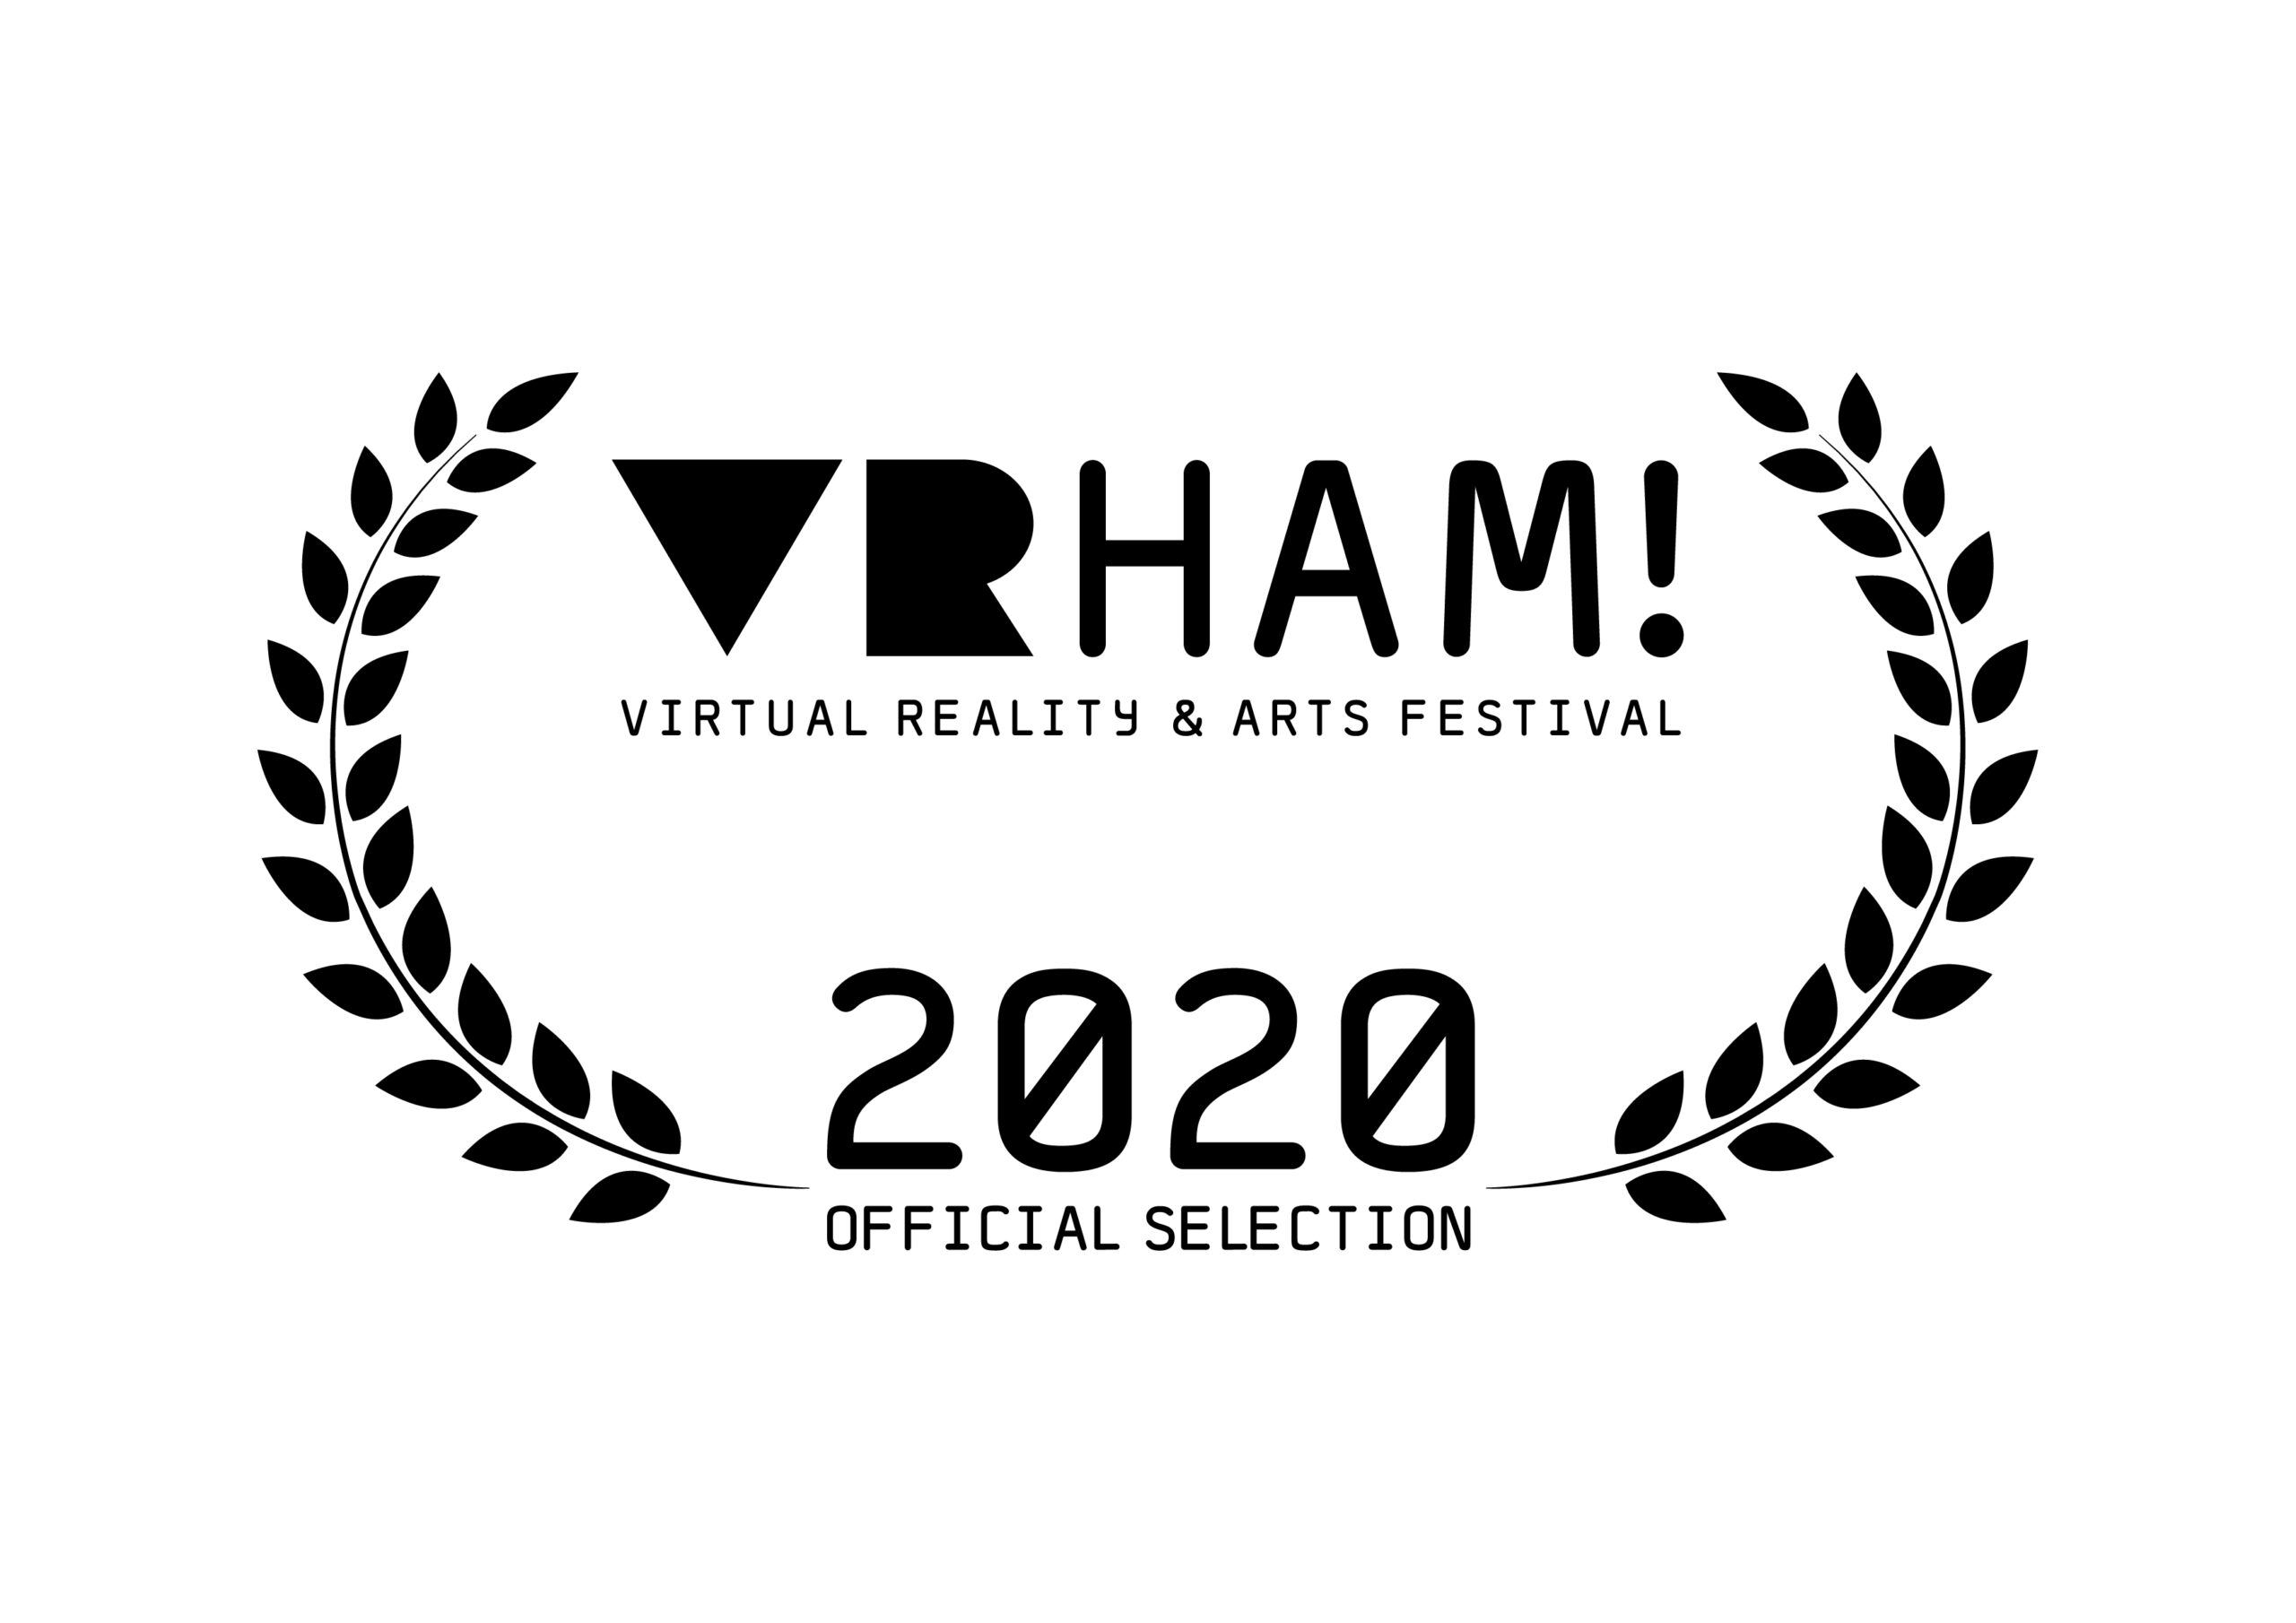 2020_VRHAMVirtual_Signage_OfficialSelection_black